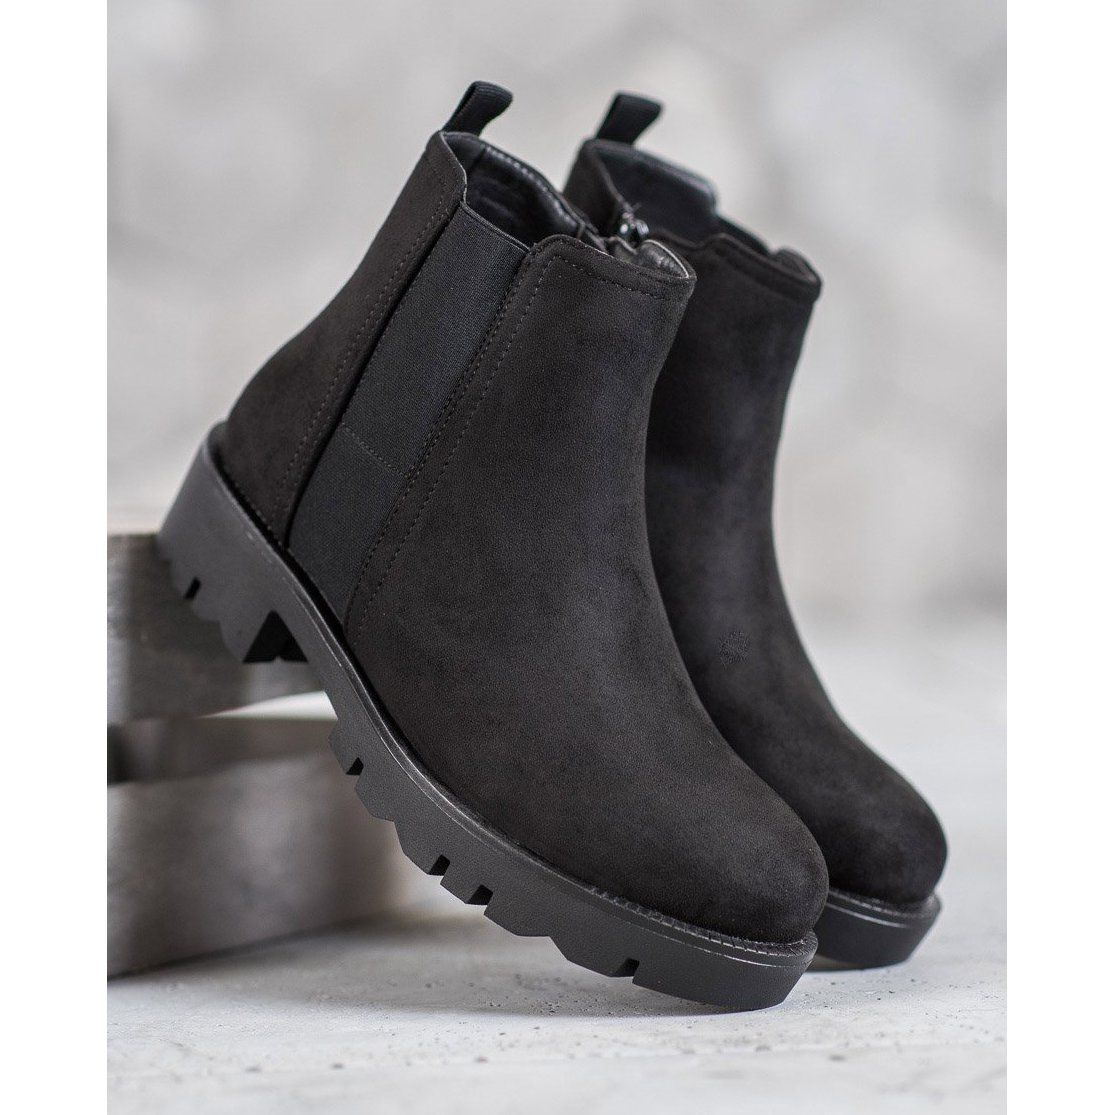 Filippo Botki Na Platformie Czarne Boots Comfortable Womens Boots Womens Boots